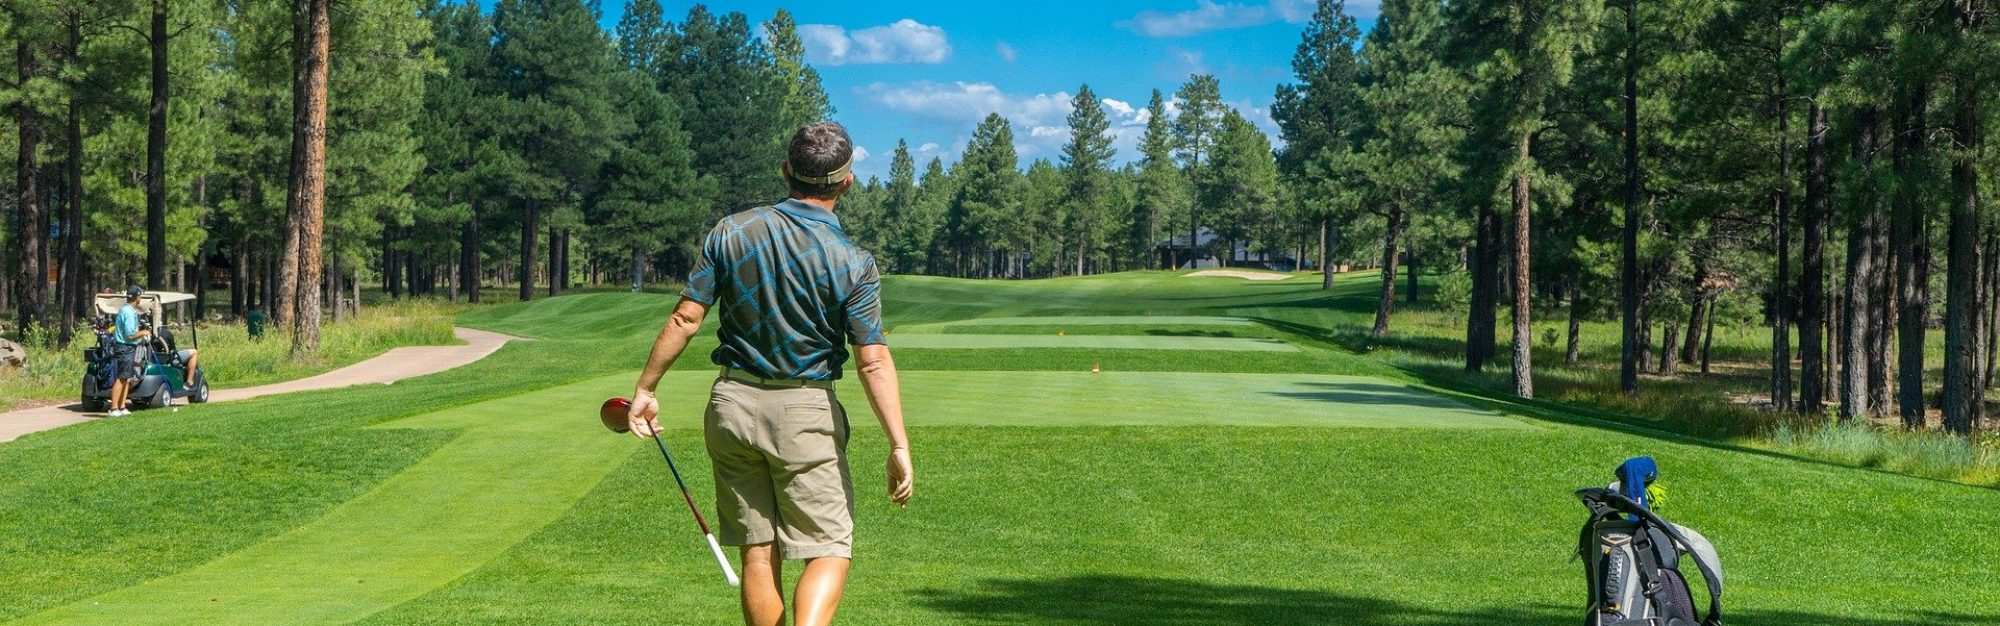 Golf betting explained: Match types and odds